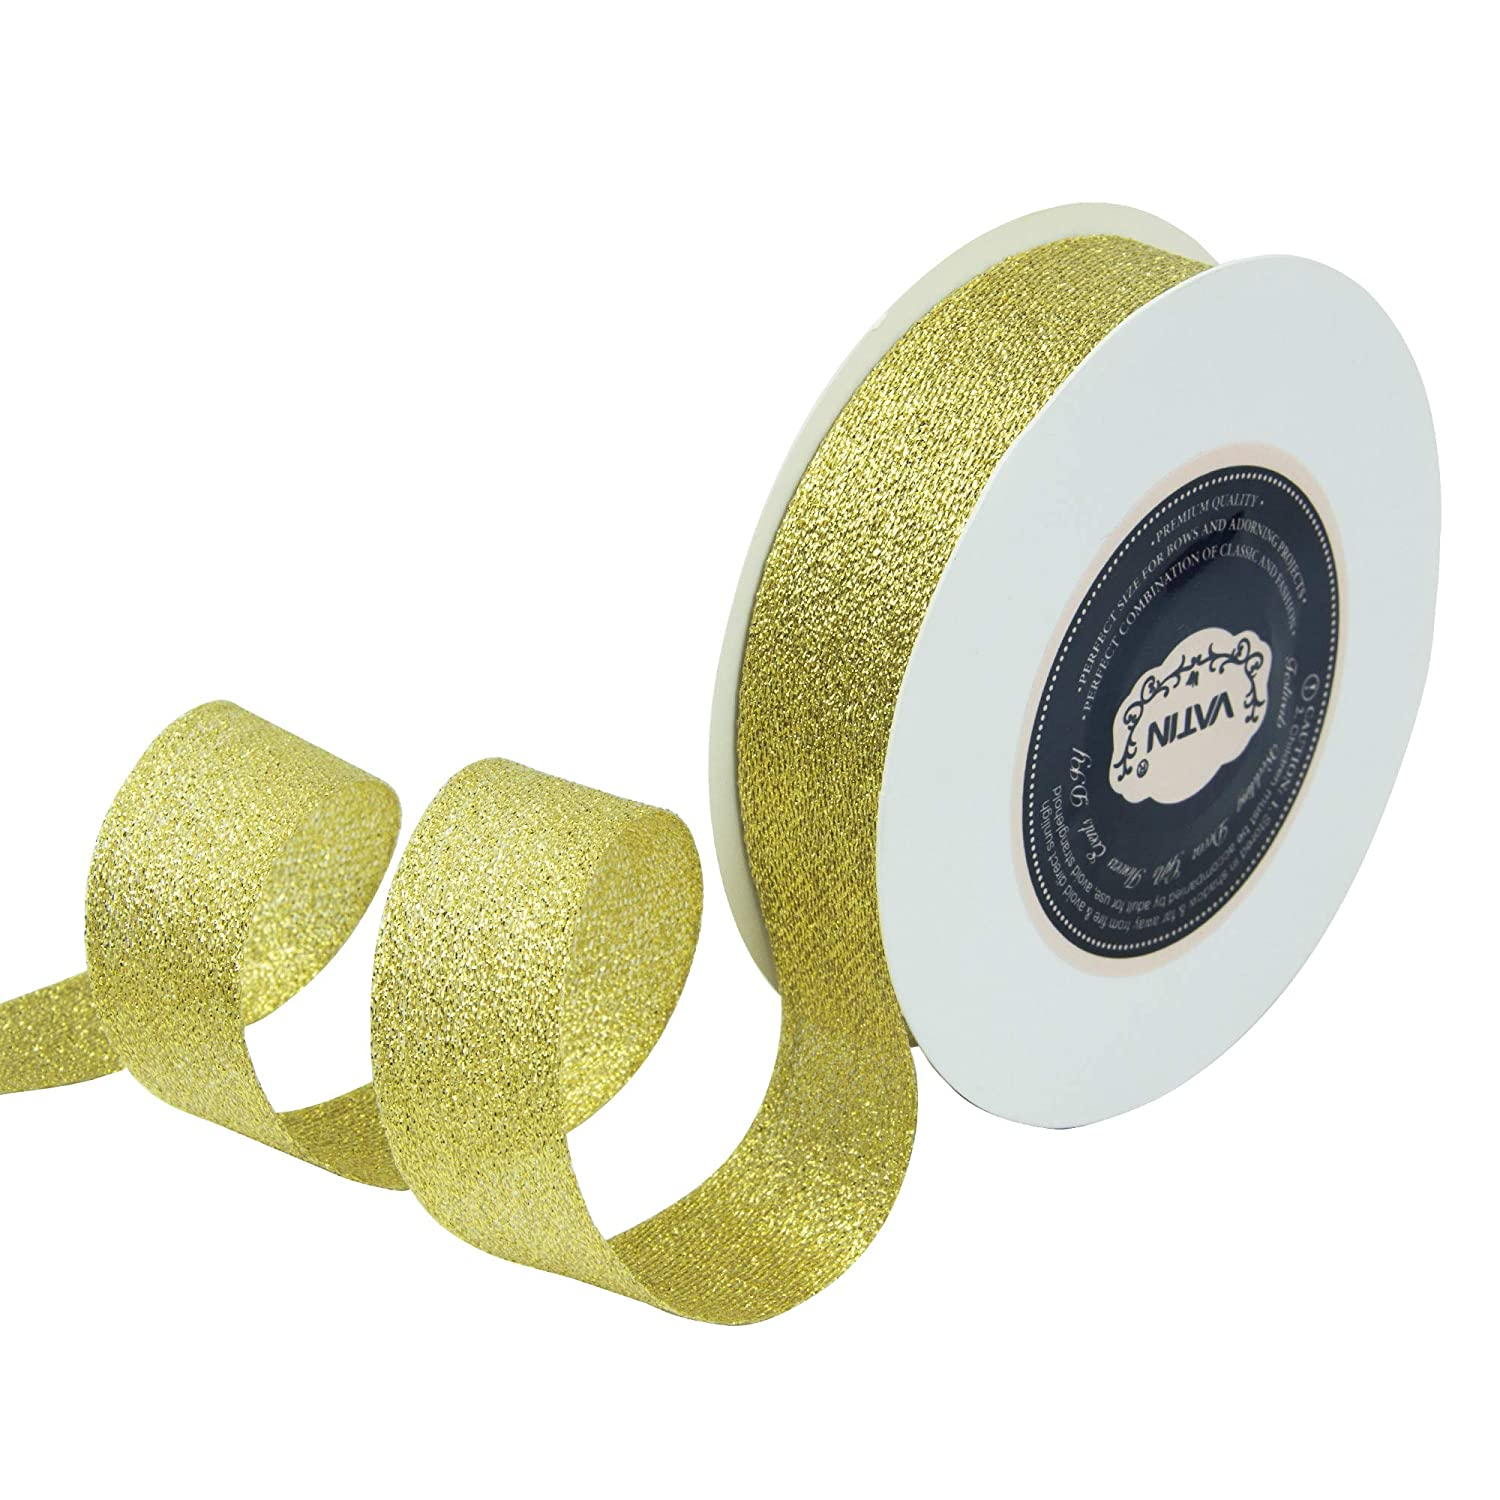 Baby Shower,Packing and Other Projects. 25 Yard Spool VATIN 1 inch Double Faced Polyester Satin Ribbon Forest Green Wreath Perfect for Wedding